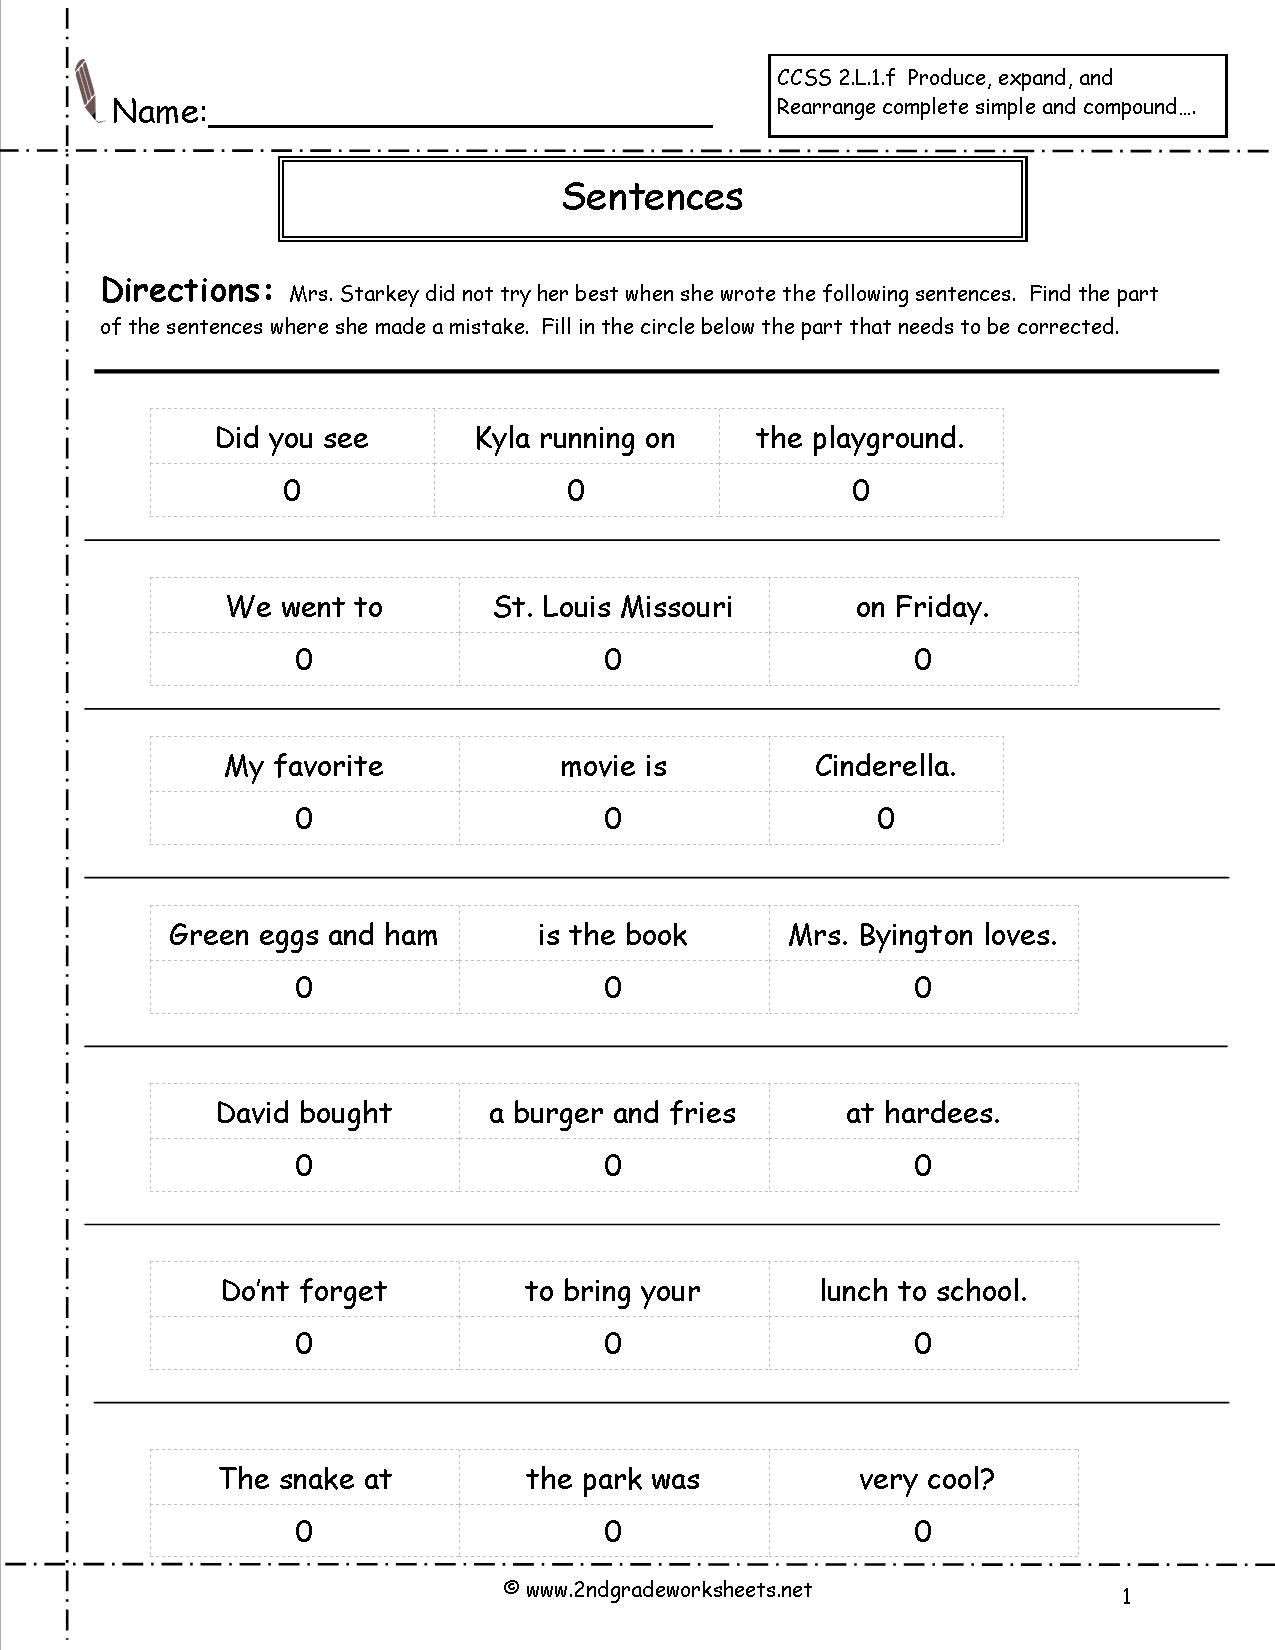 6th Grade Sentence Structure Worksheets Correct the Sentence Worksheet